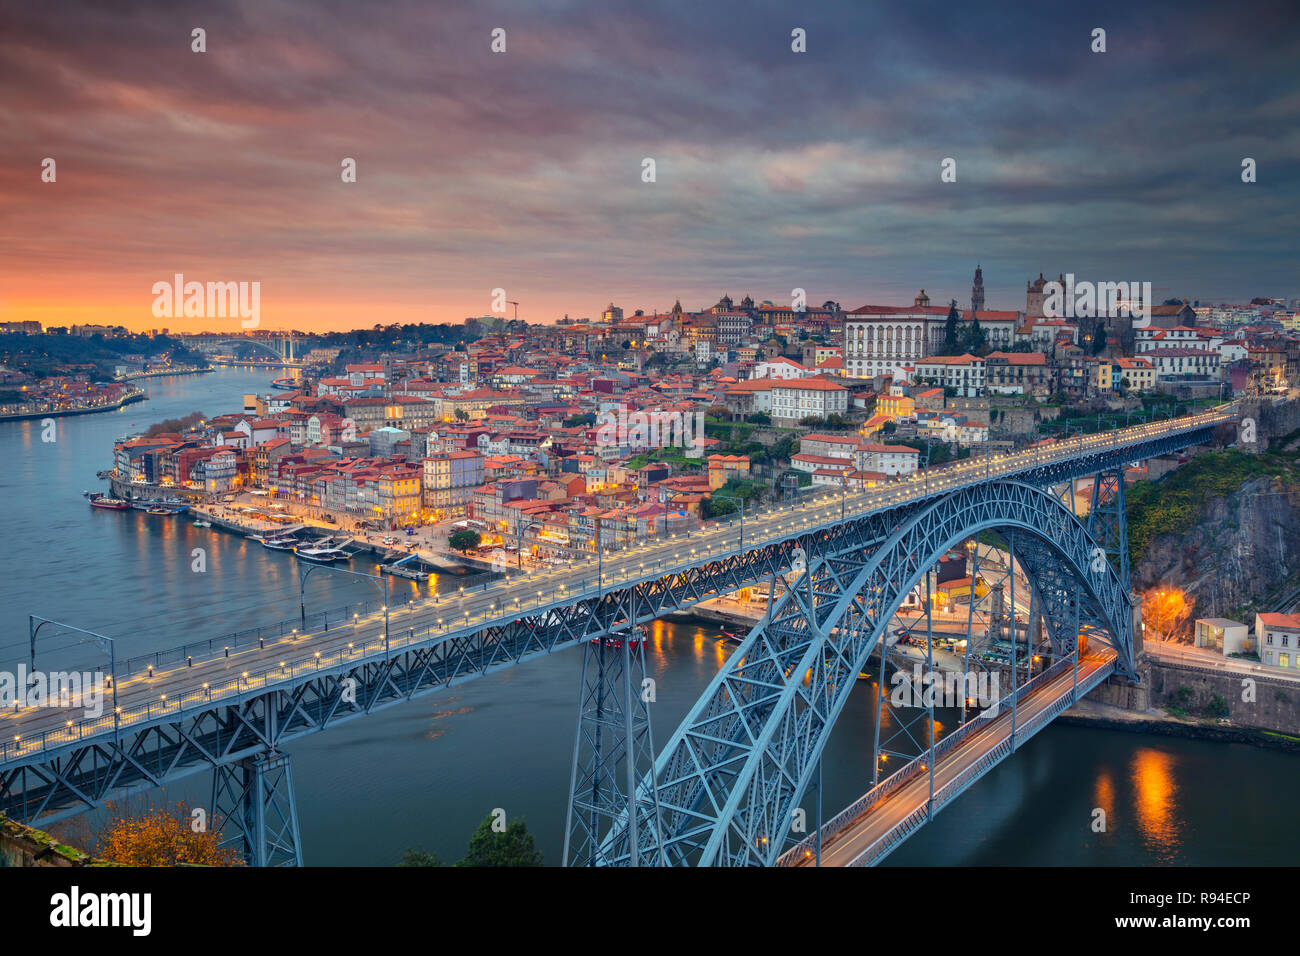 Porto, Portugal. Aerial cityscape image of Porto, Portugal with the famous Luis I Bridge and the Douro River during dramatic sunset. - Stock Image